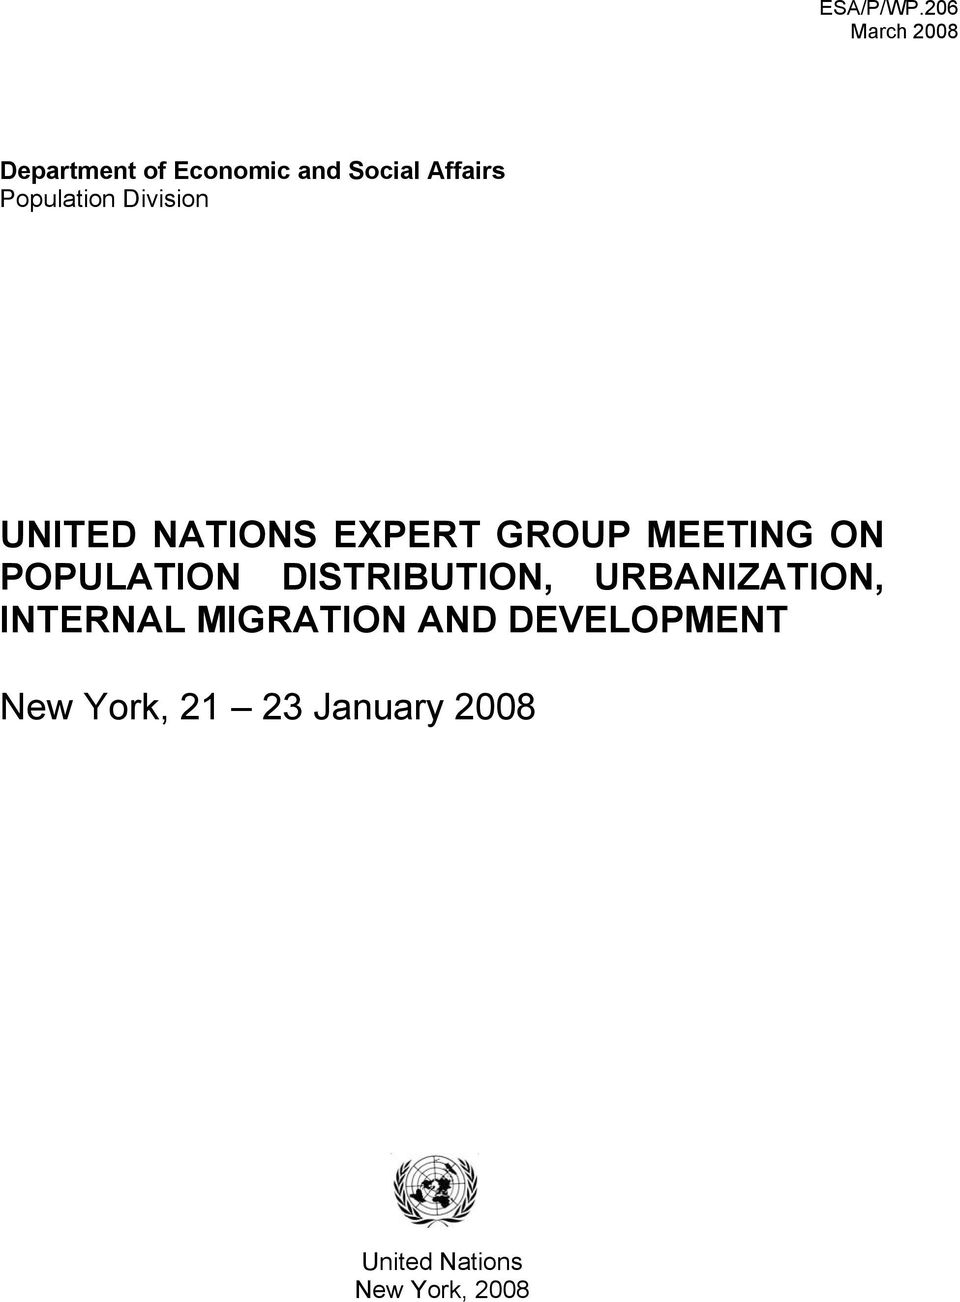 Population Division UNITED NATIONS EXPERT GROUP MEETING ON